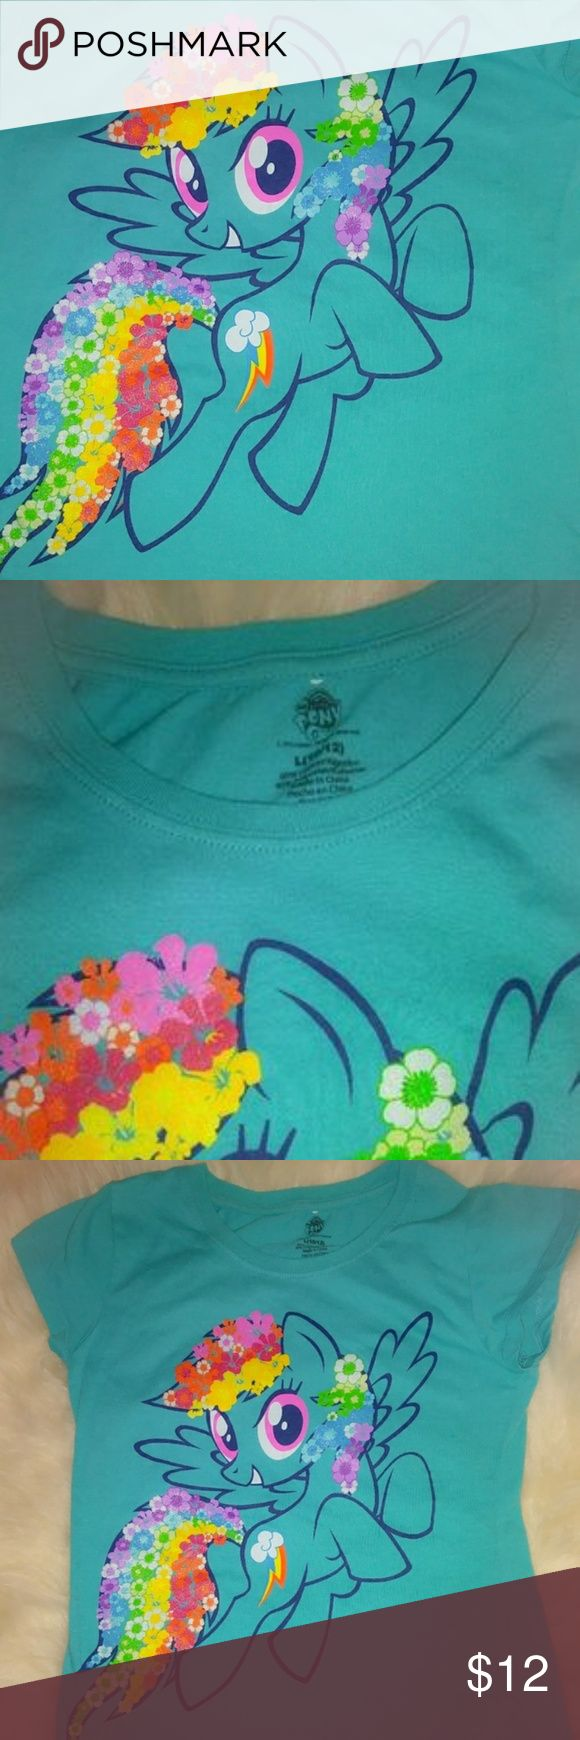 My Little Pony Rain Bow Dash Size 10/12 Perfect my little pony shirt! Worn one time than left at Nanas and once found didnt fit anymore. Size 10/12 No rips holes or stains My Little Pony Shirts & Tops